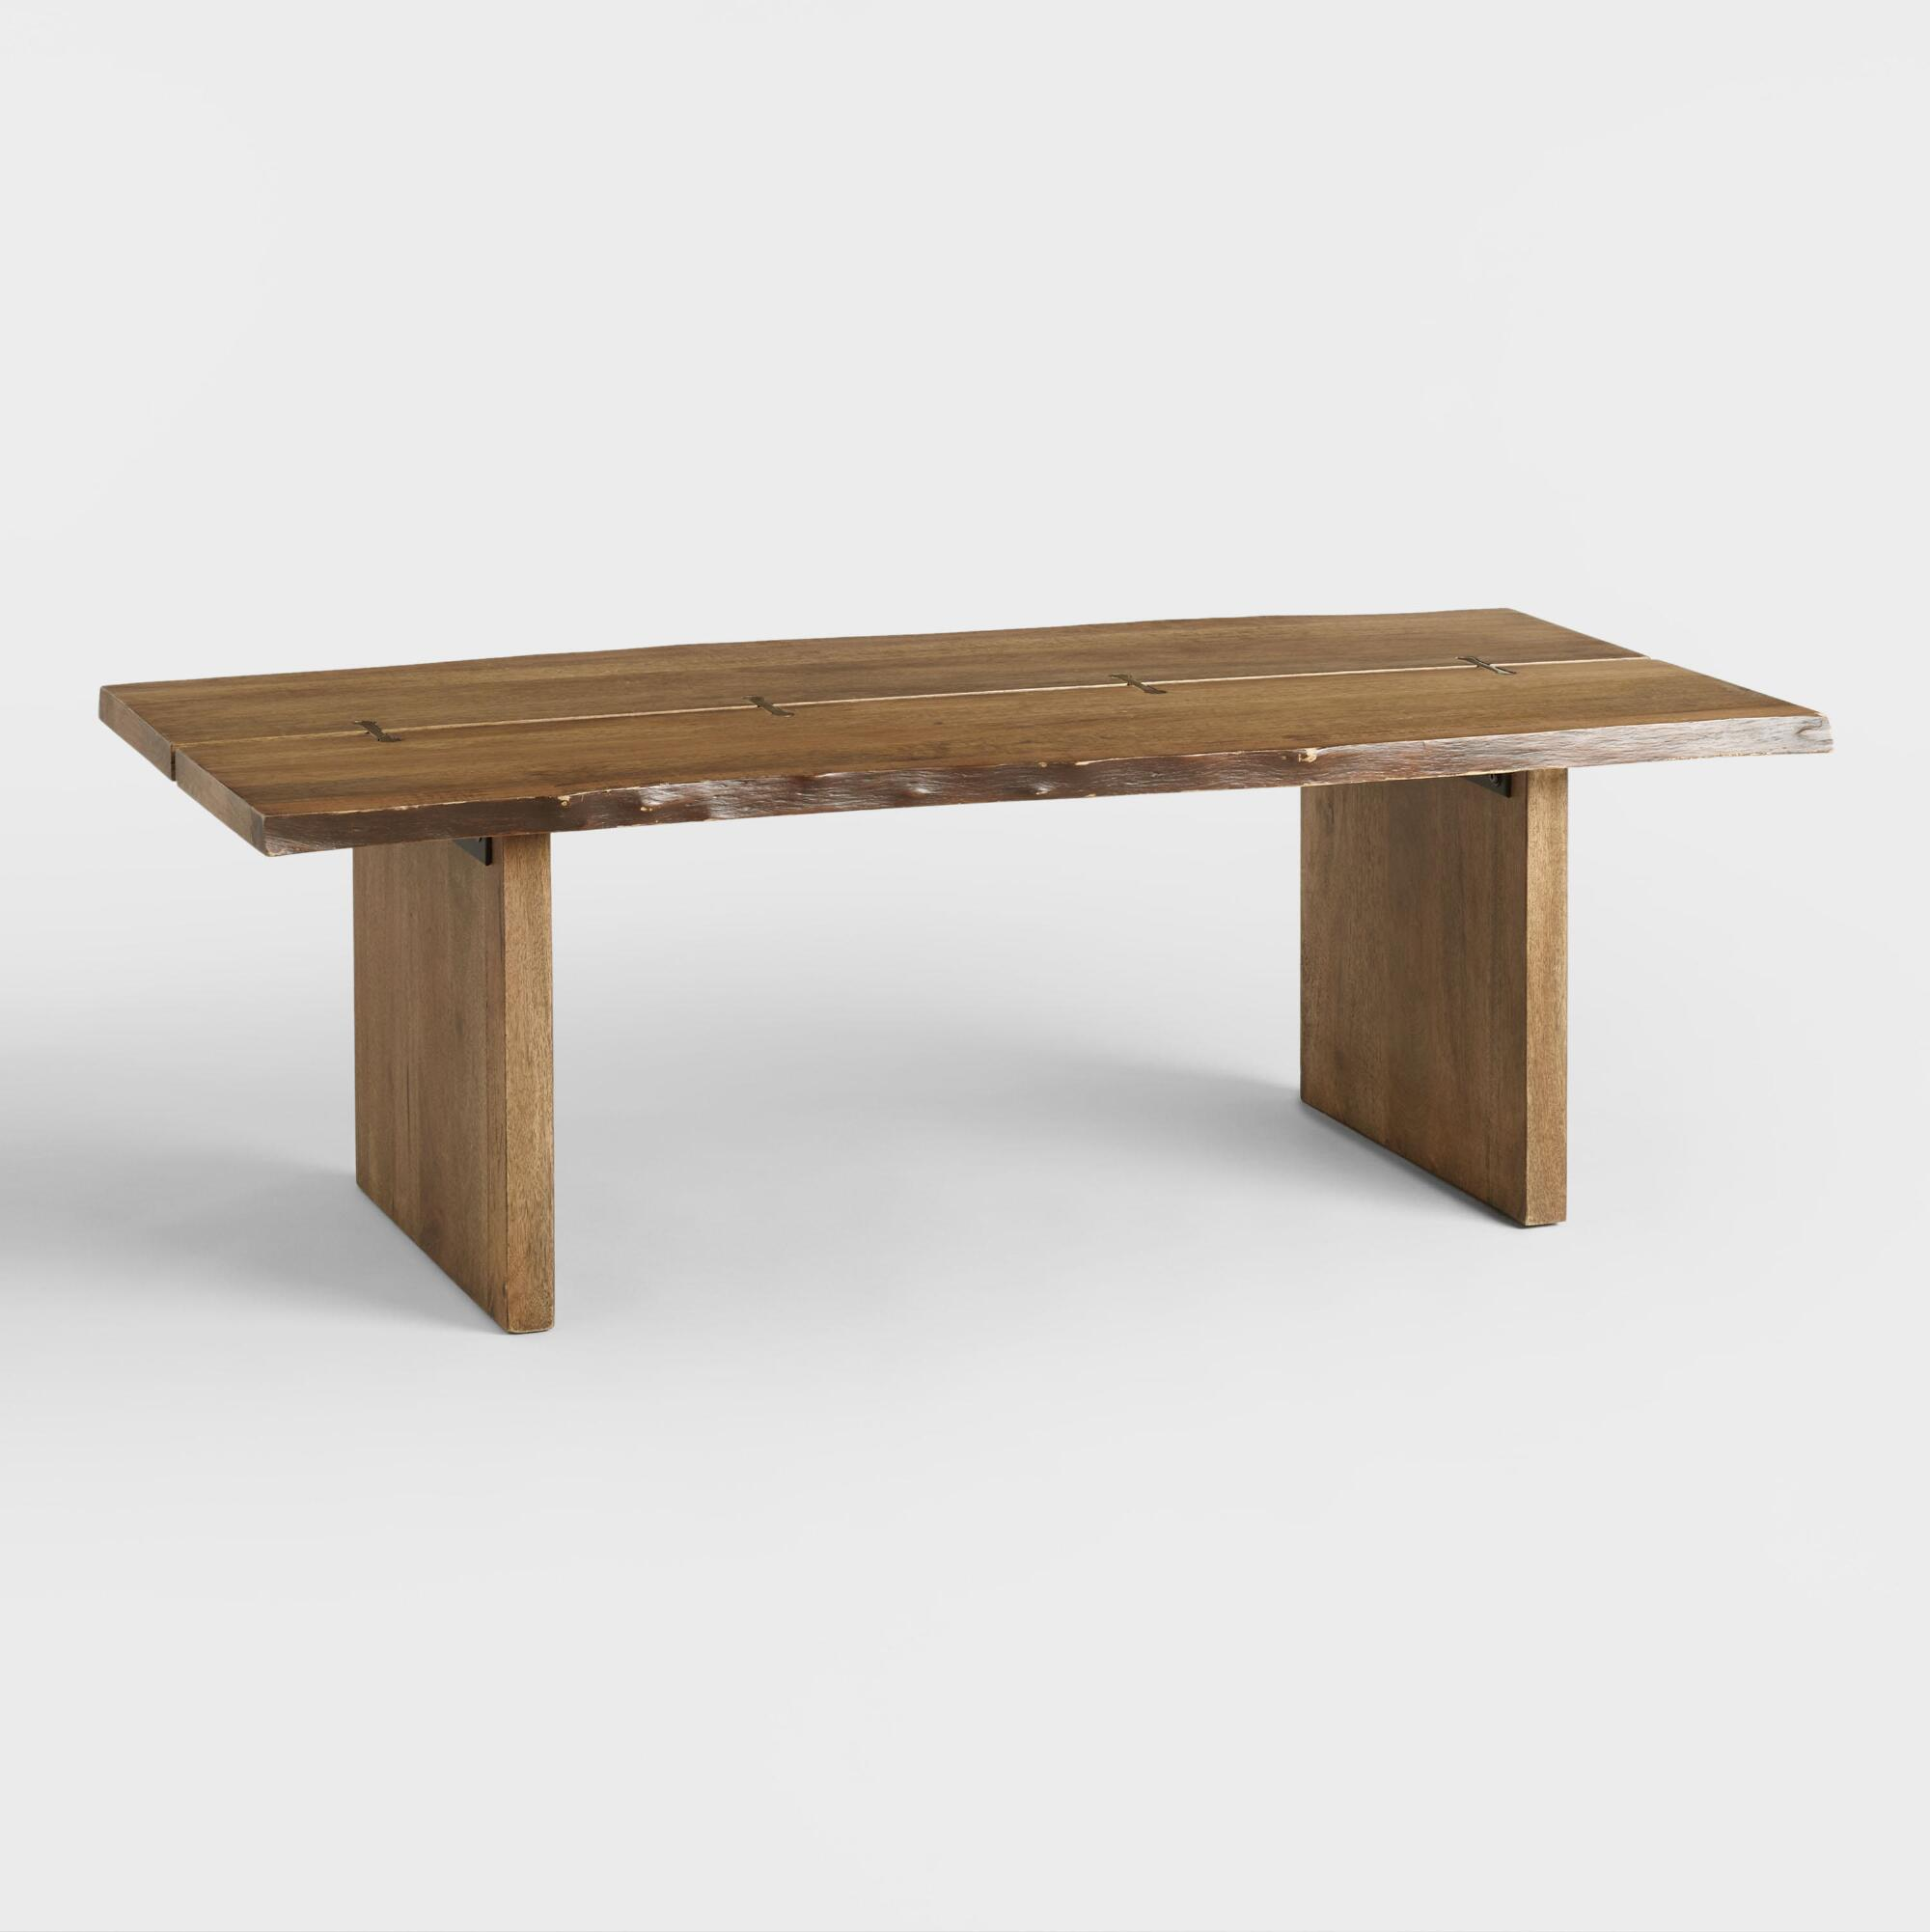 Wood Maleya Live Edge Coffee Table: Brown by World Market